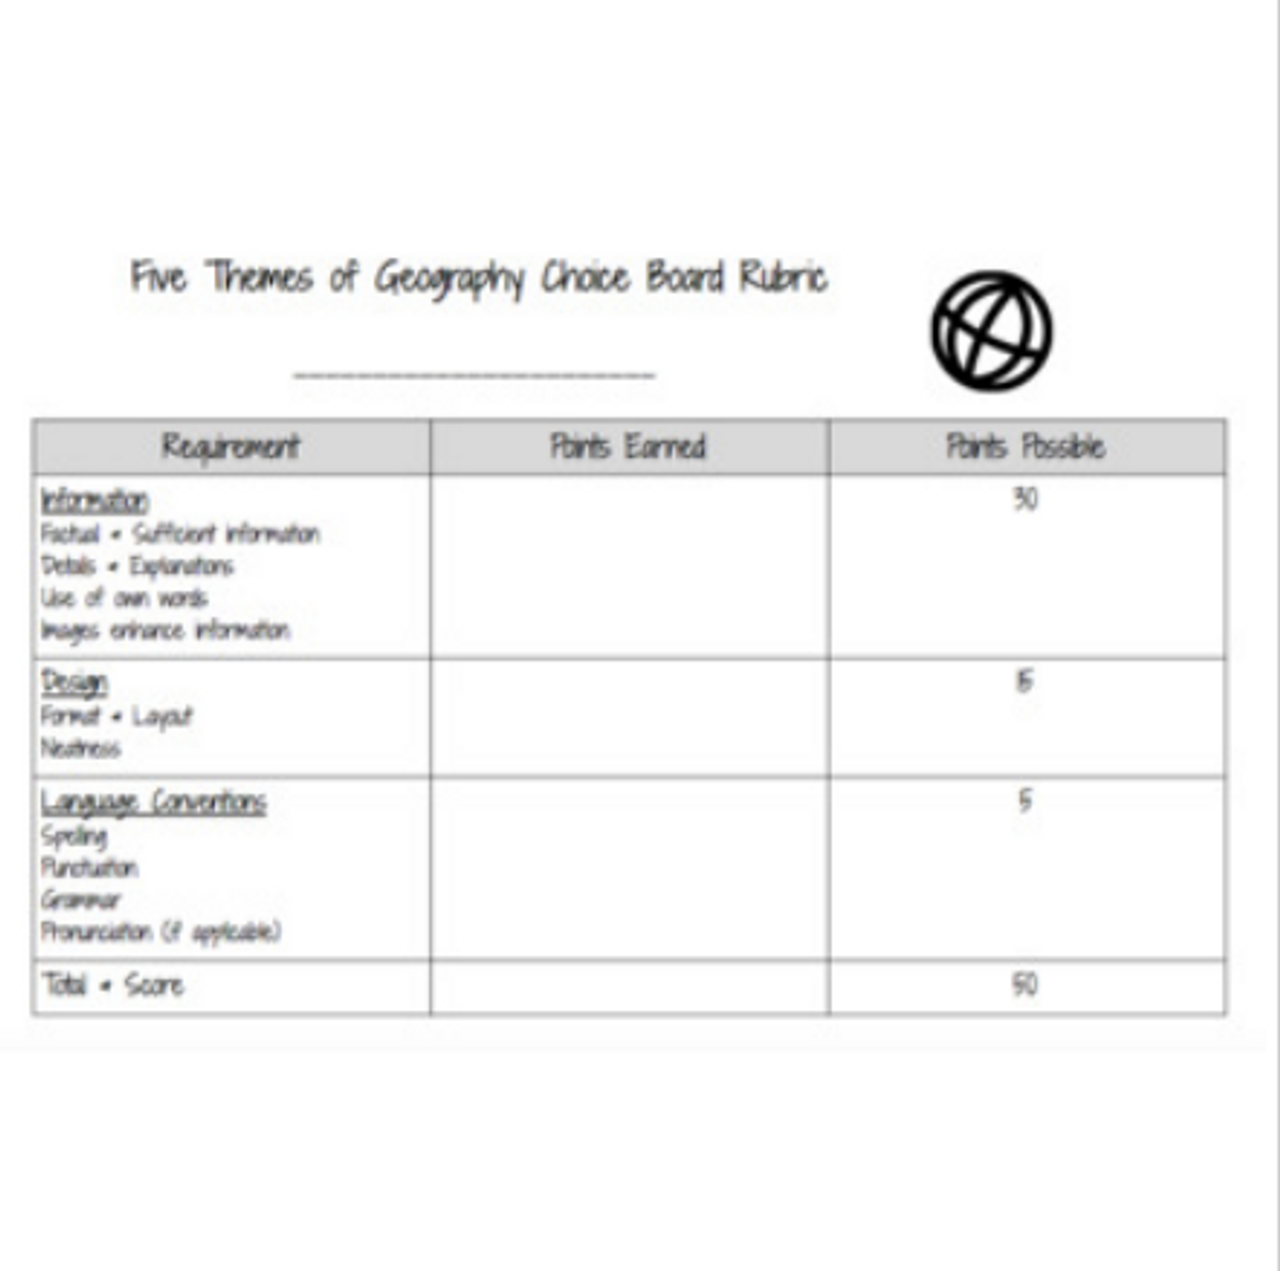 Five Themes of Geography Choice Board